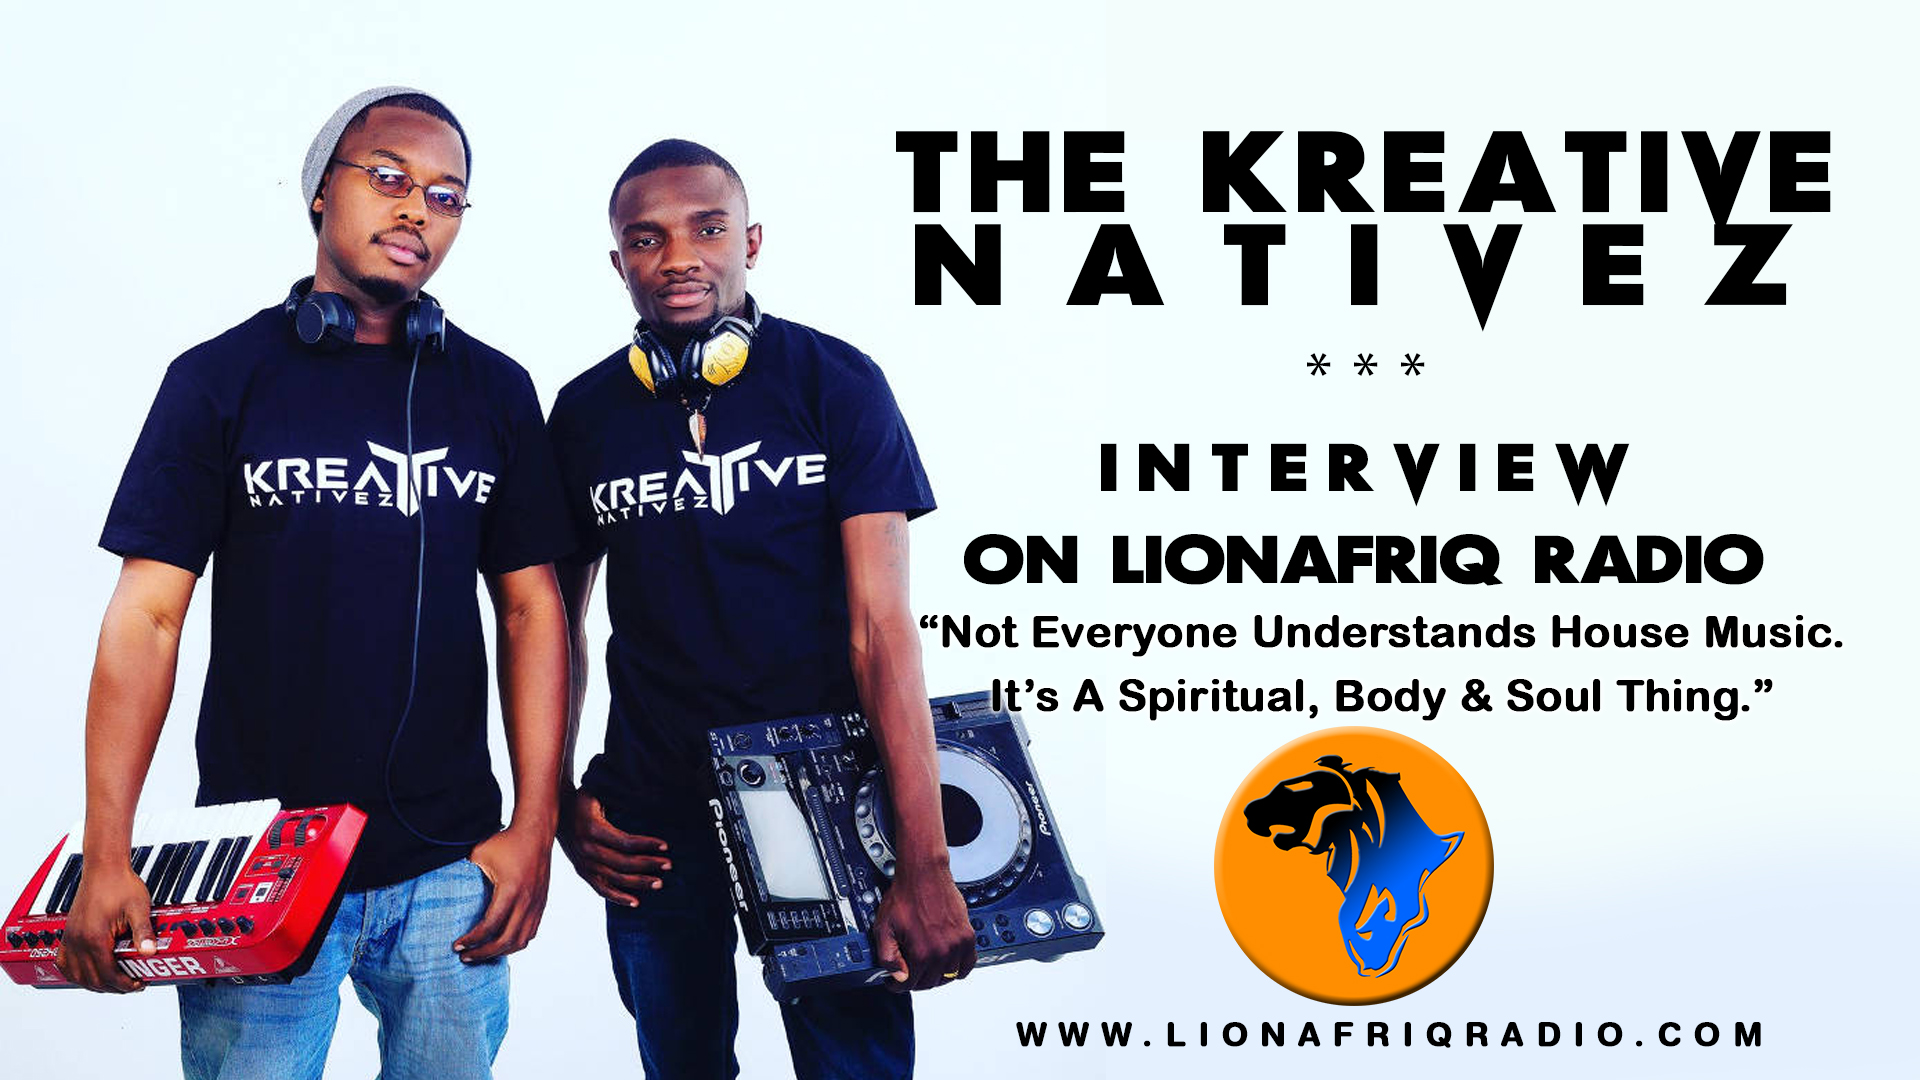 Meet The Kreative Nativez (Interview)